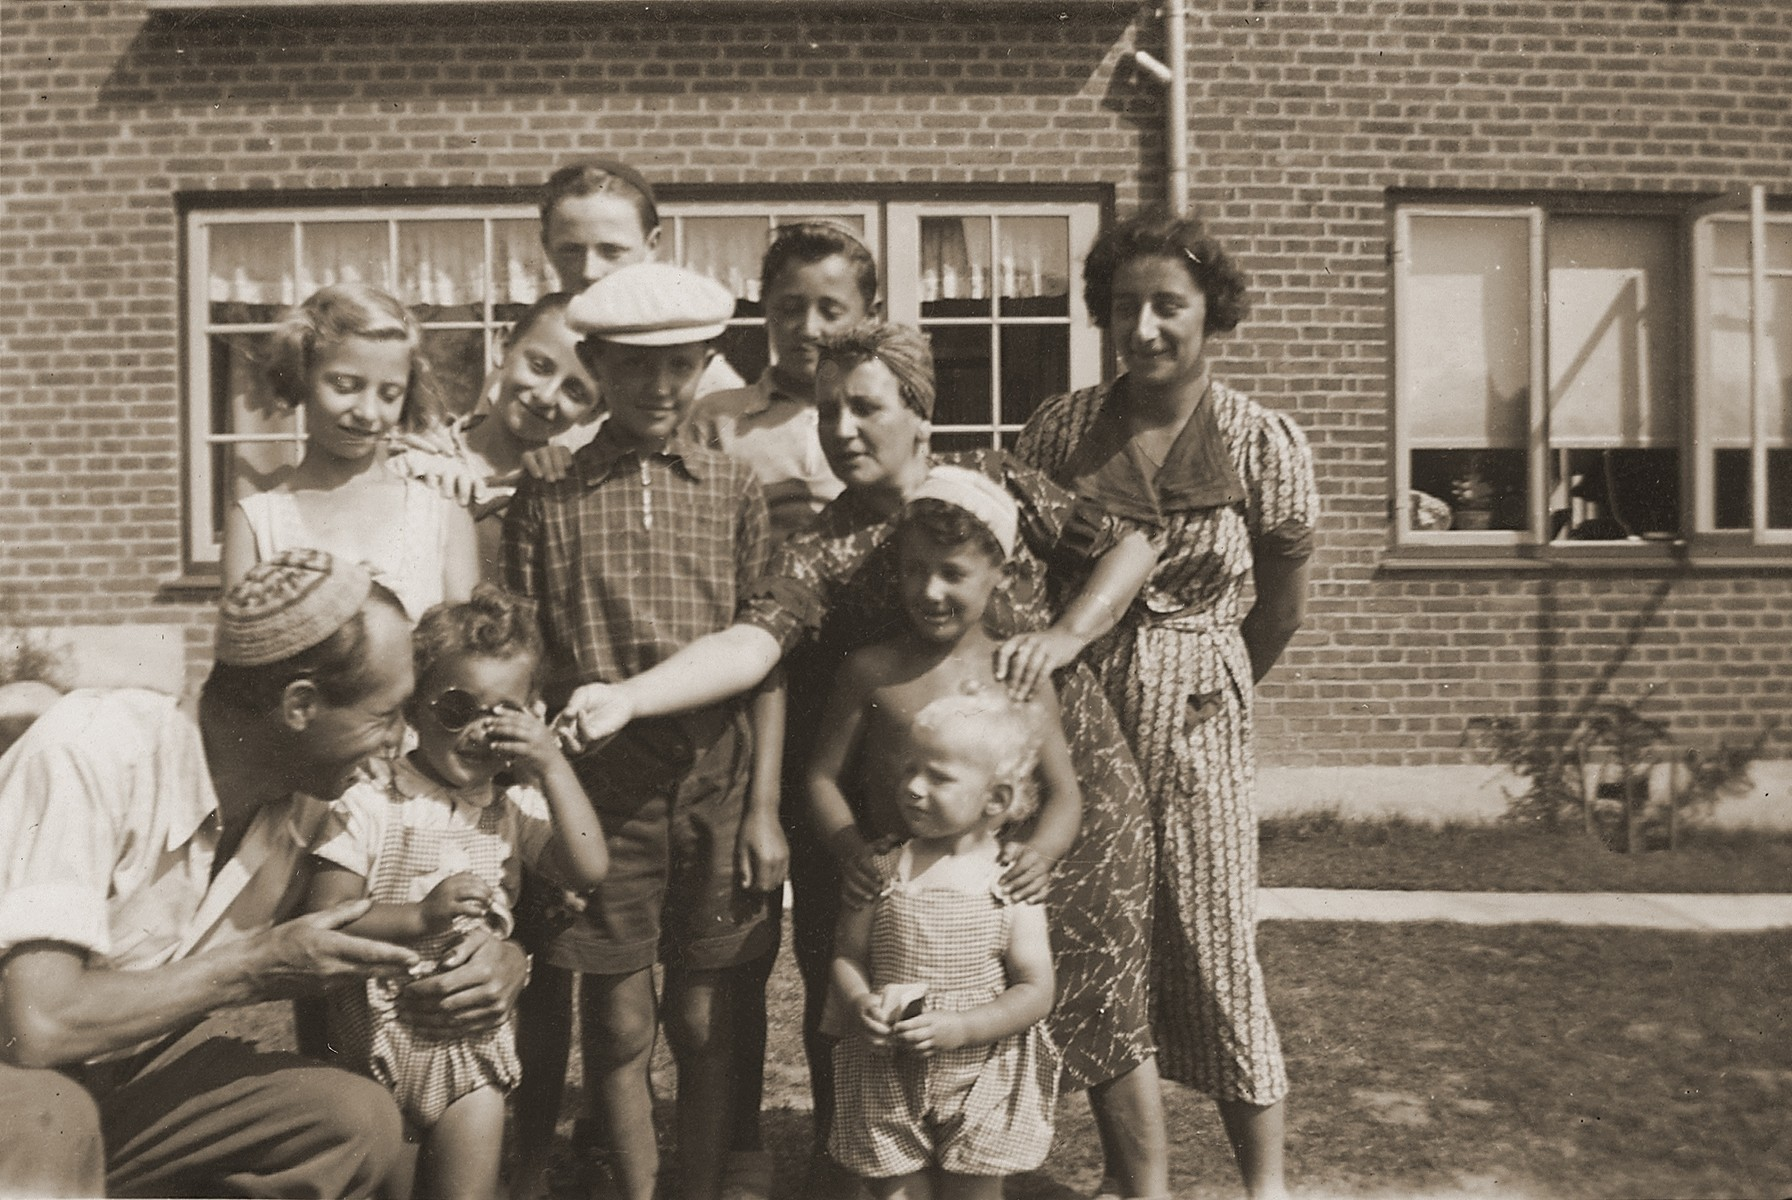 Jewish families vacation together in Denmark.  Among those pictured are Milan, Leo and Gus Goldberger and their mother Helen Goldberger.